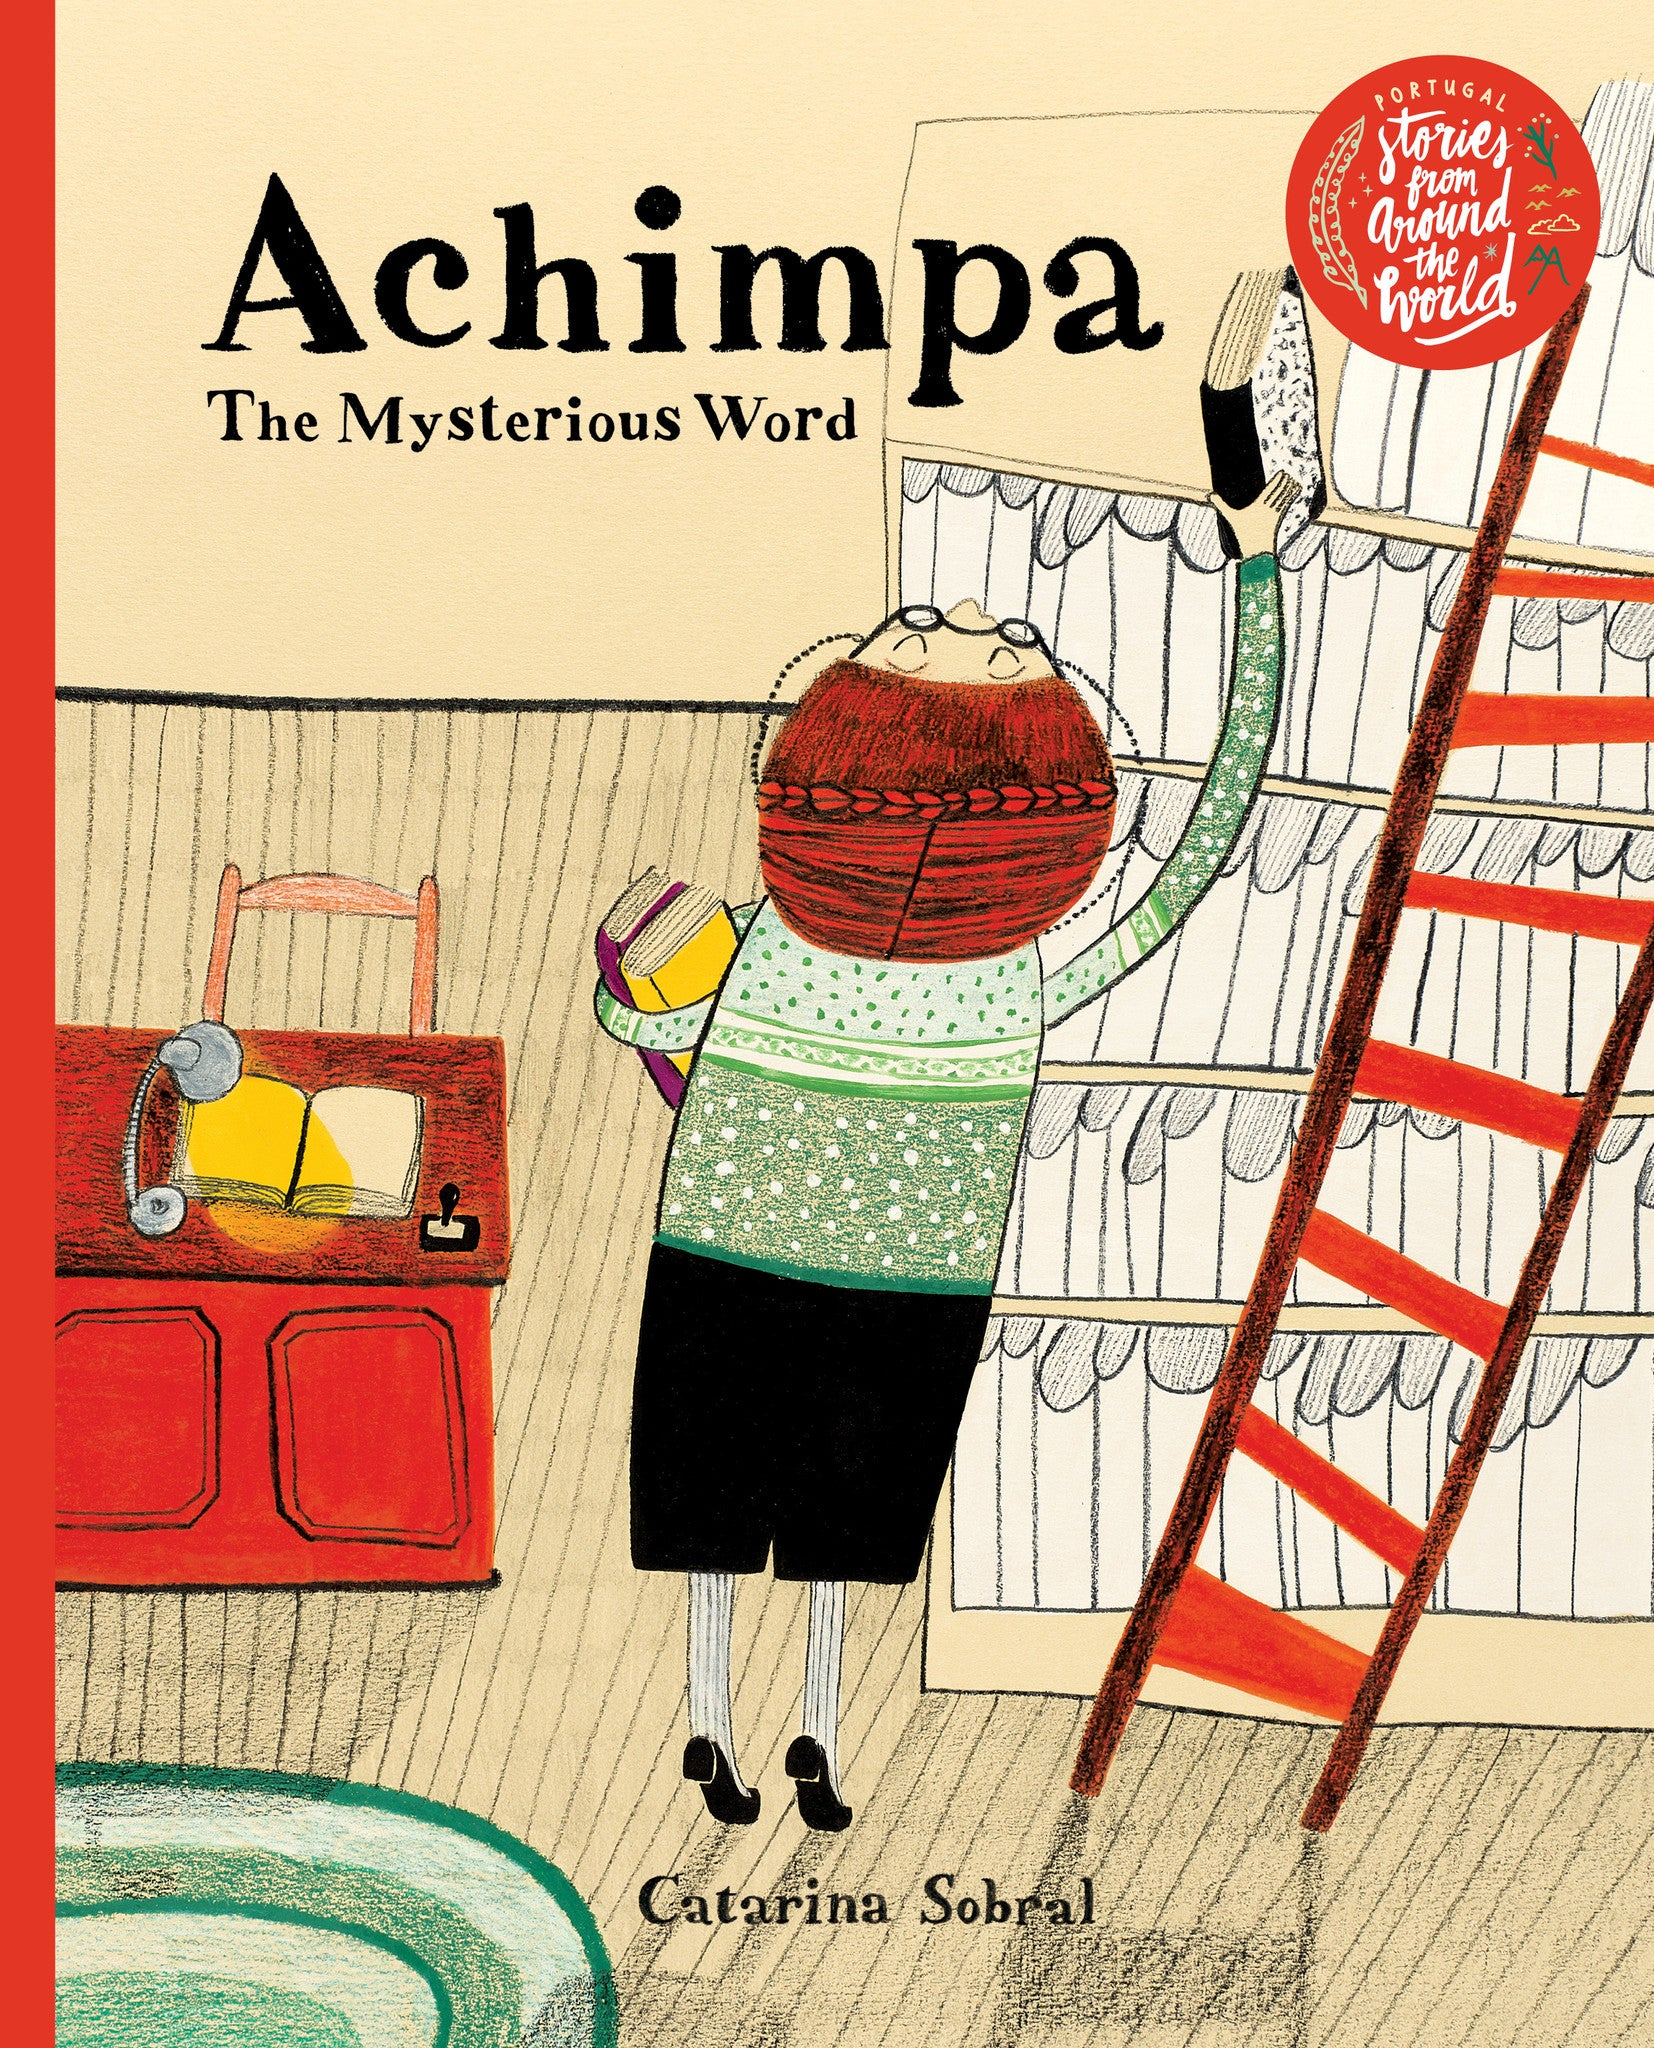 Achimpa: The Mysterious Word